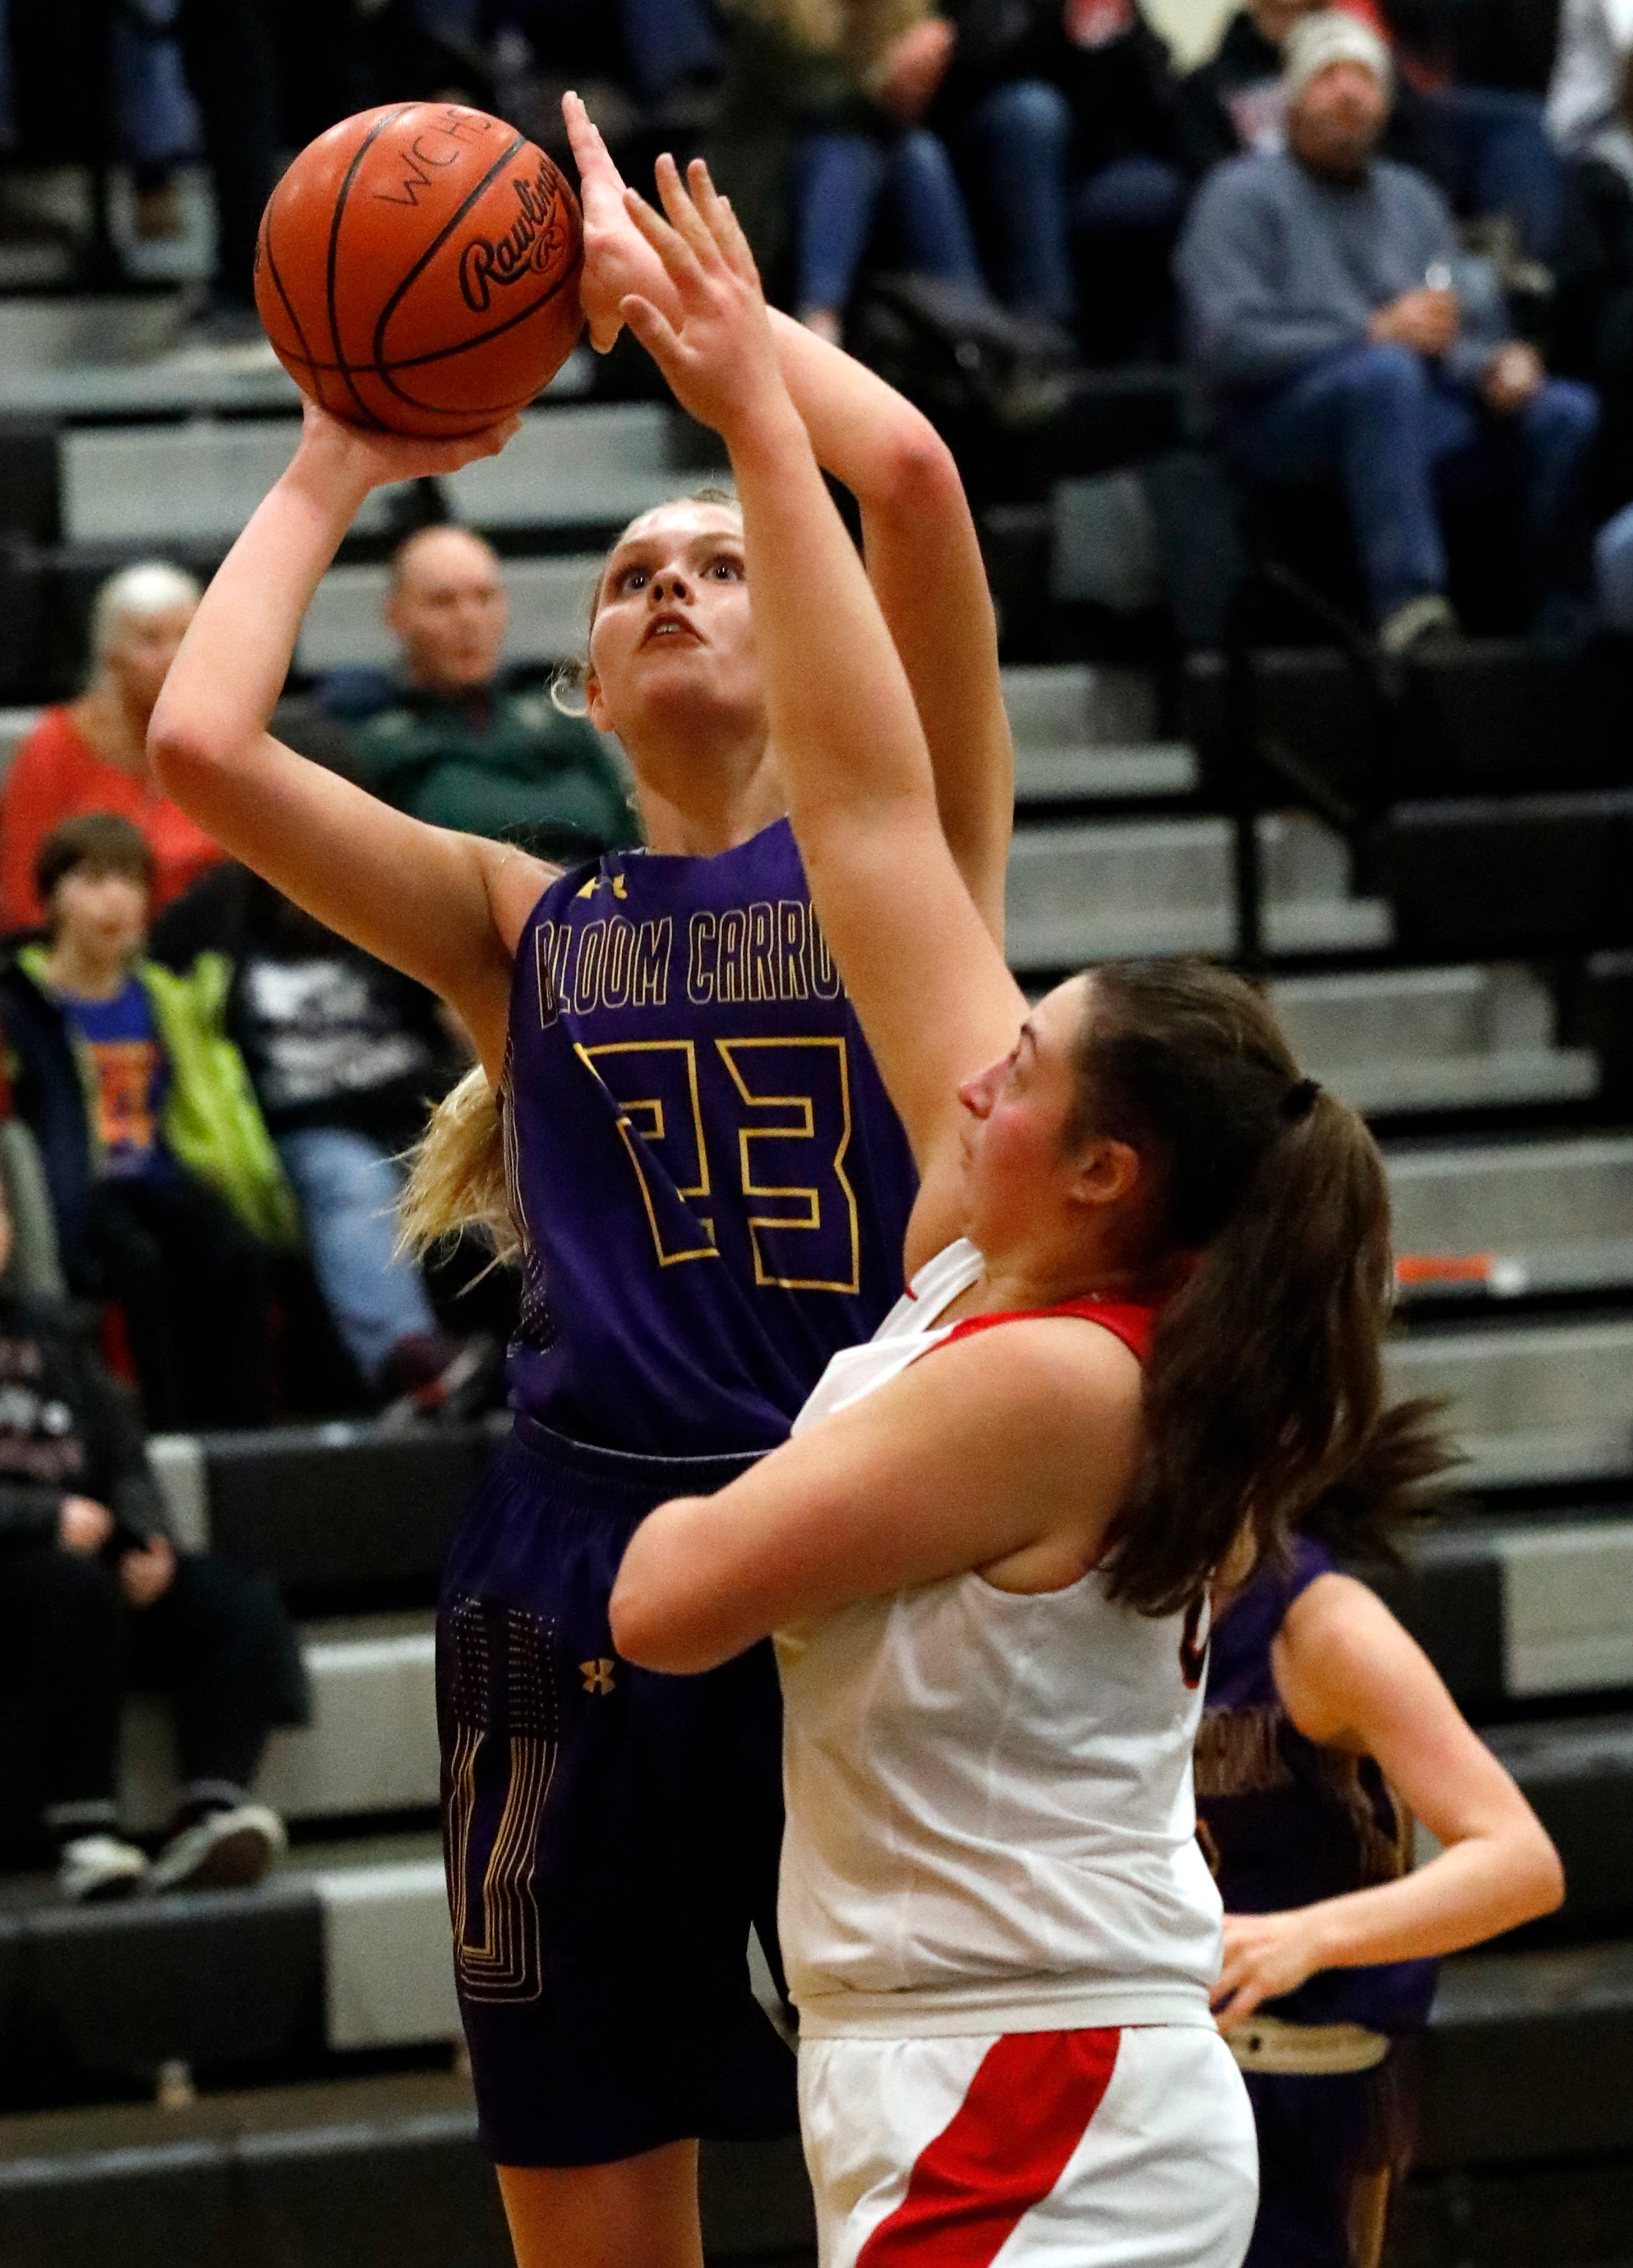 Bloom-Carroll's Chloe Davis takes a shot during Friday night's game, March 1, 2019, against Jonathan Alder at Westerville Central High School in Westerville. The Bulldogs won the game 69-57.